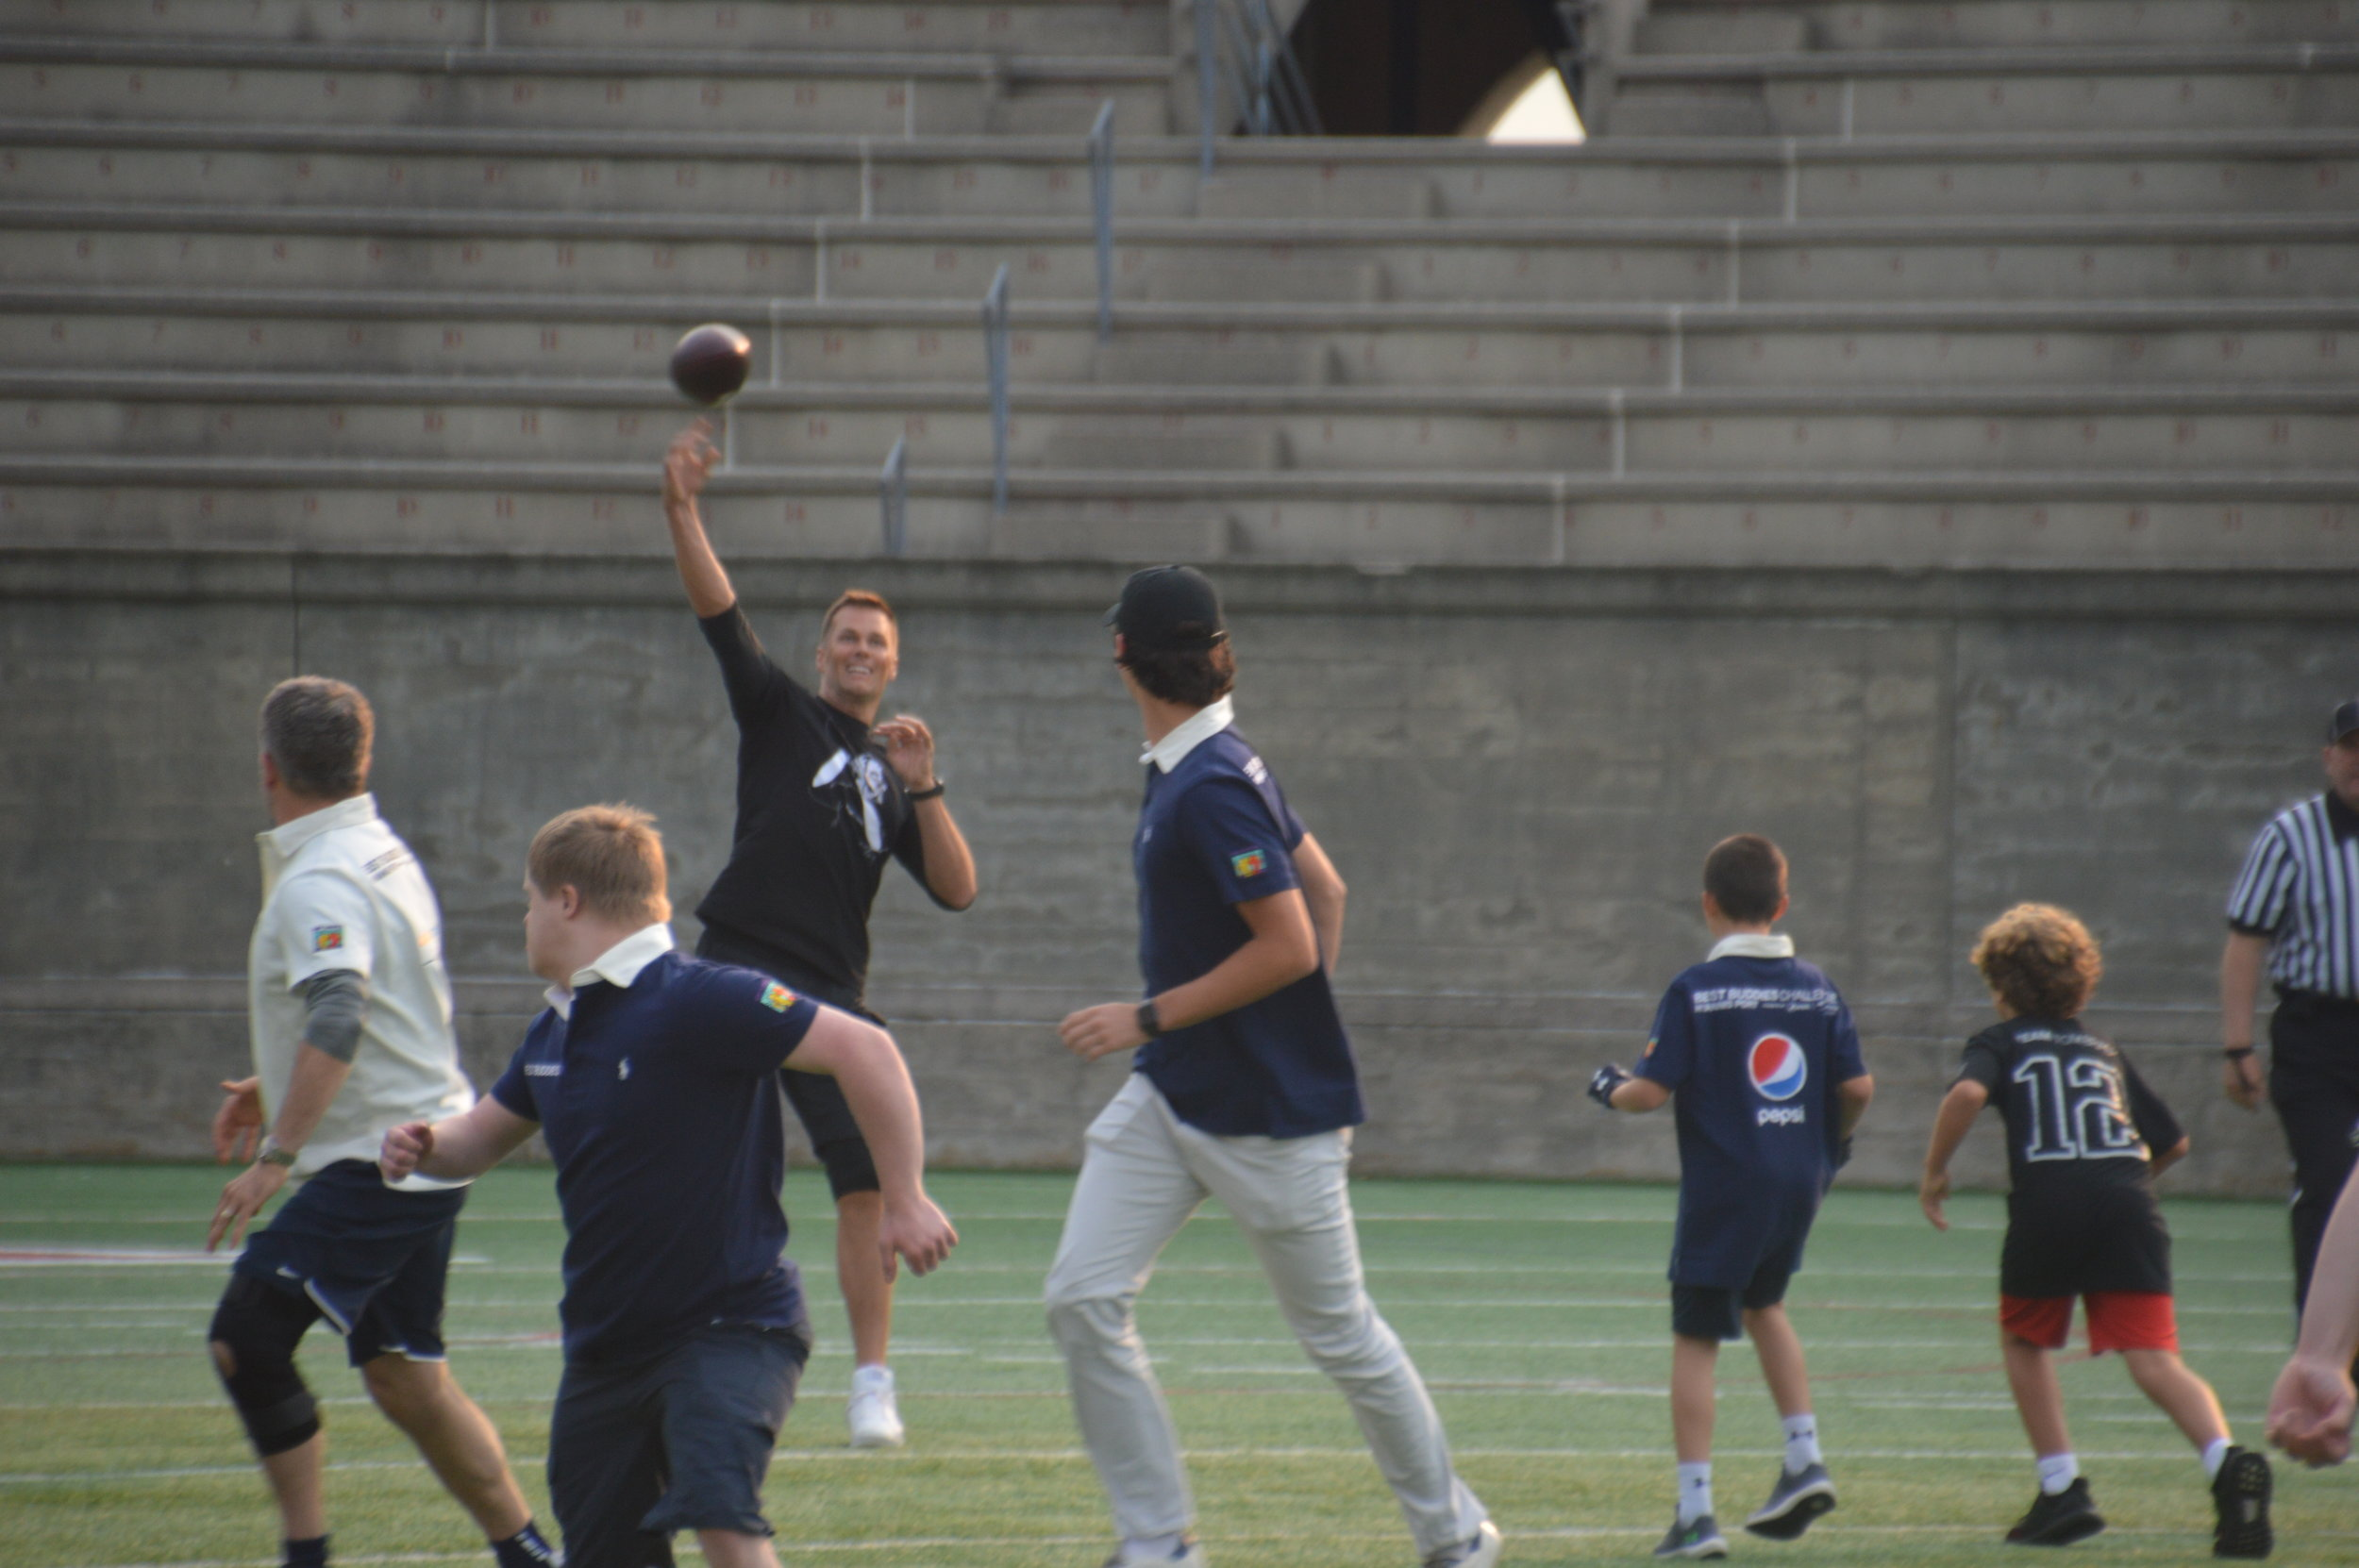 Tom Brady throws a pass during his 20th Annual Best Buddies Football Challenge.